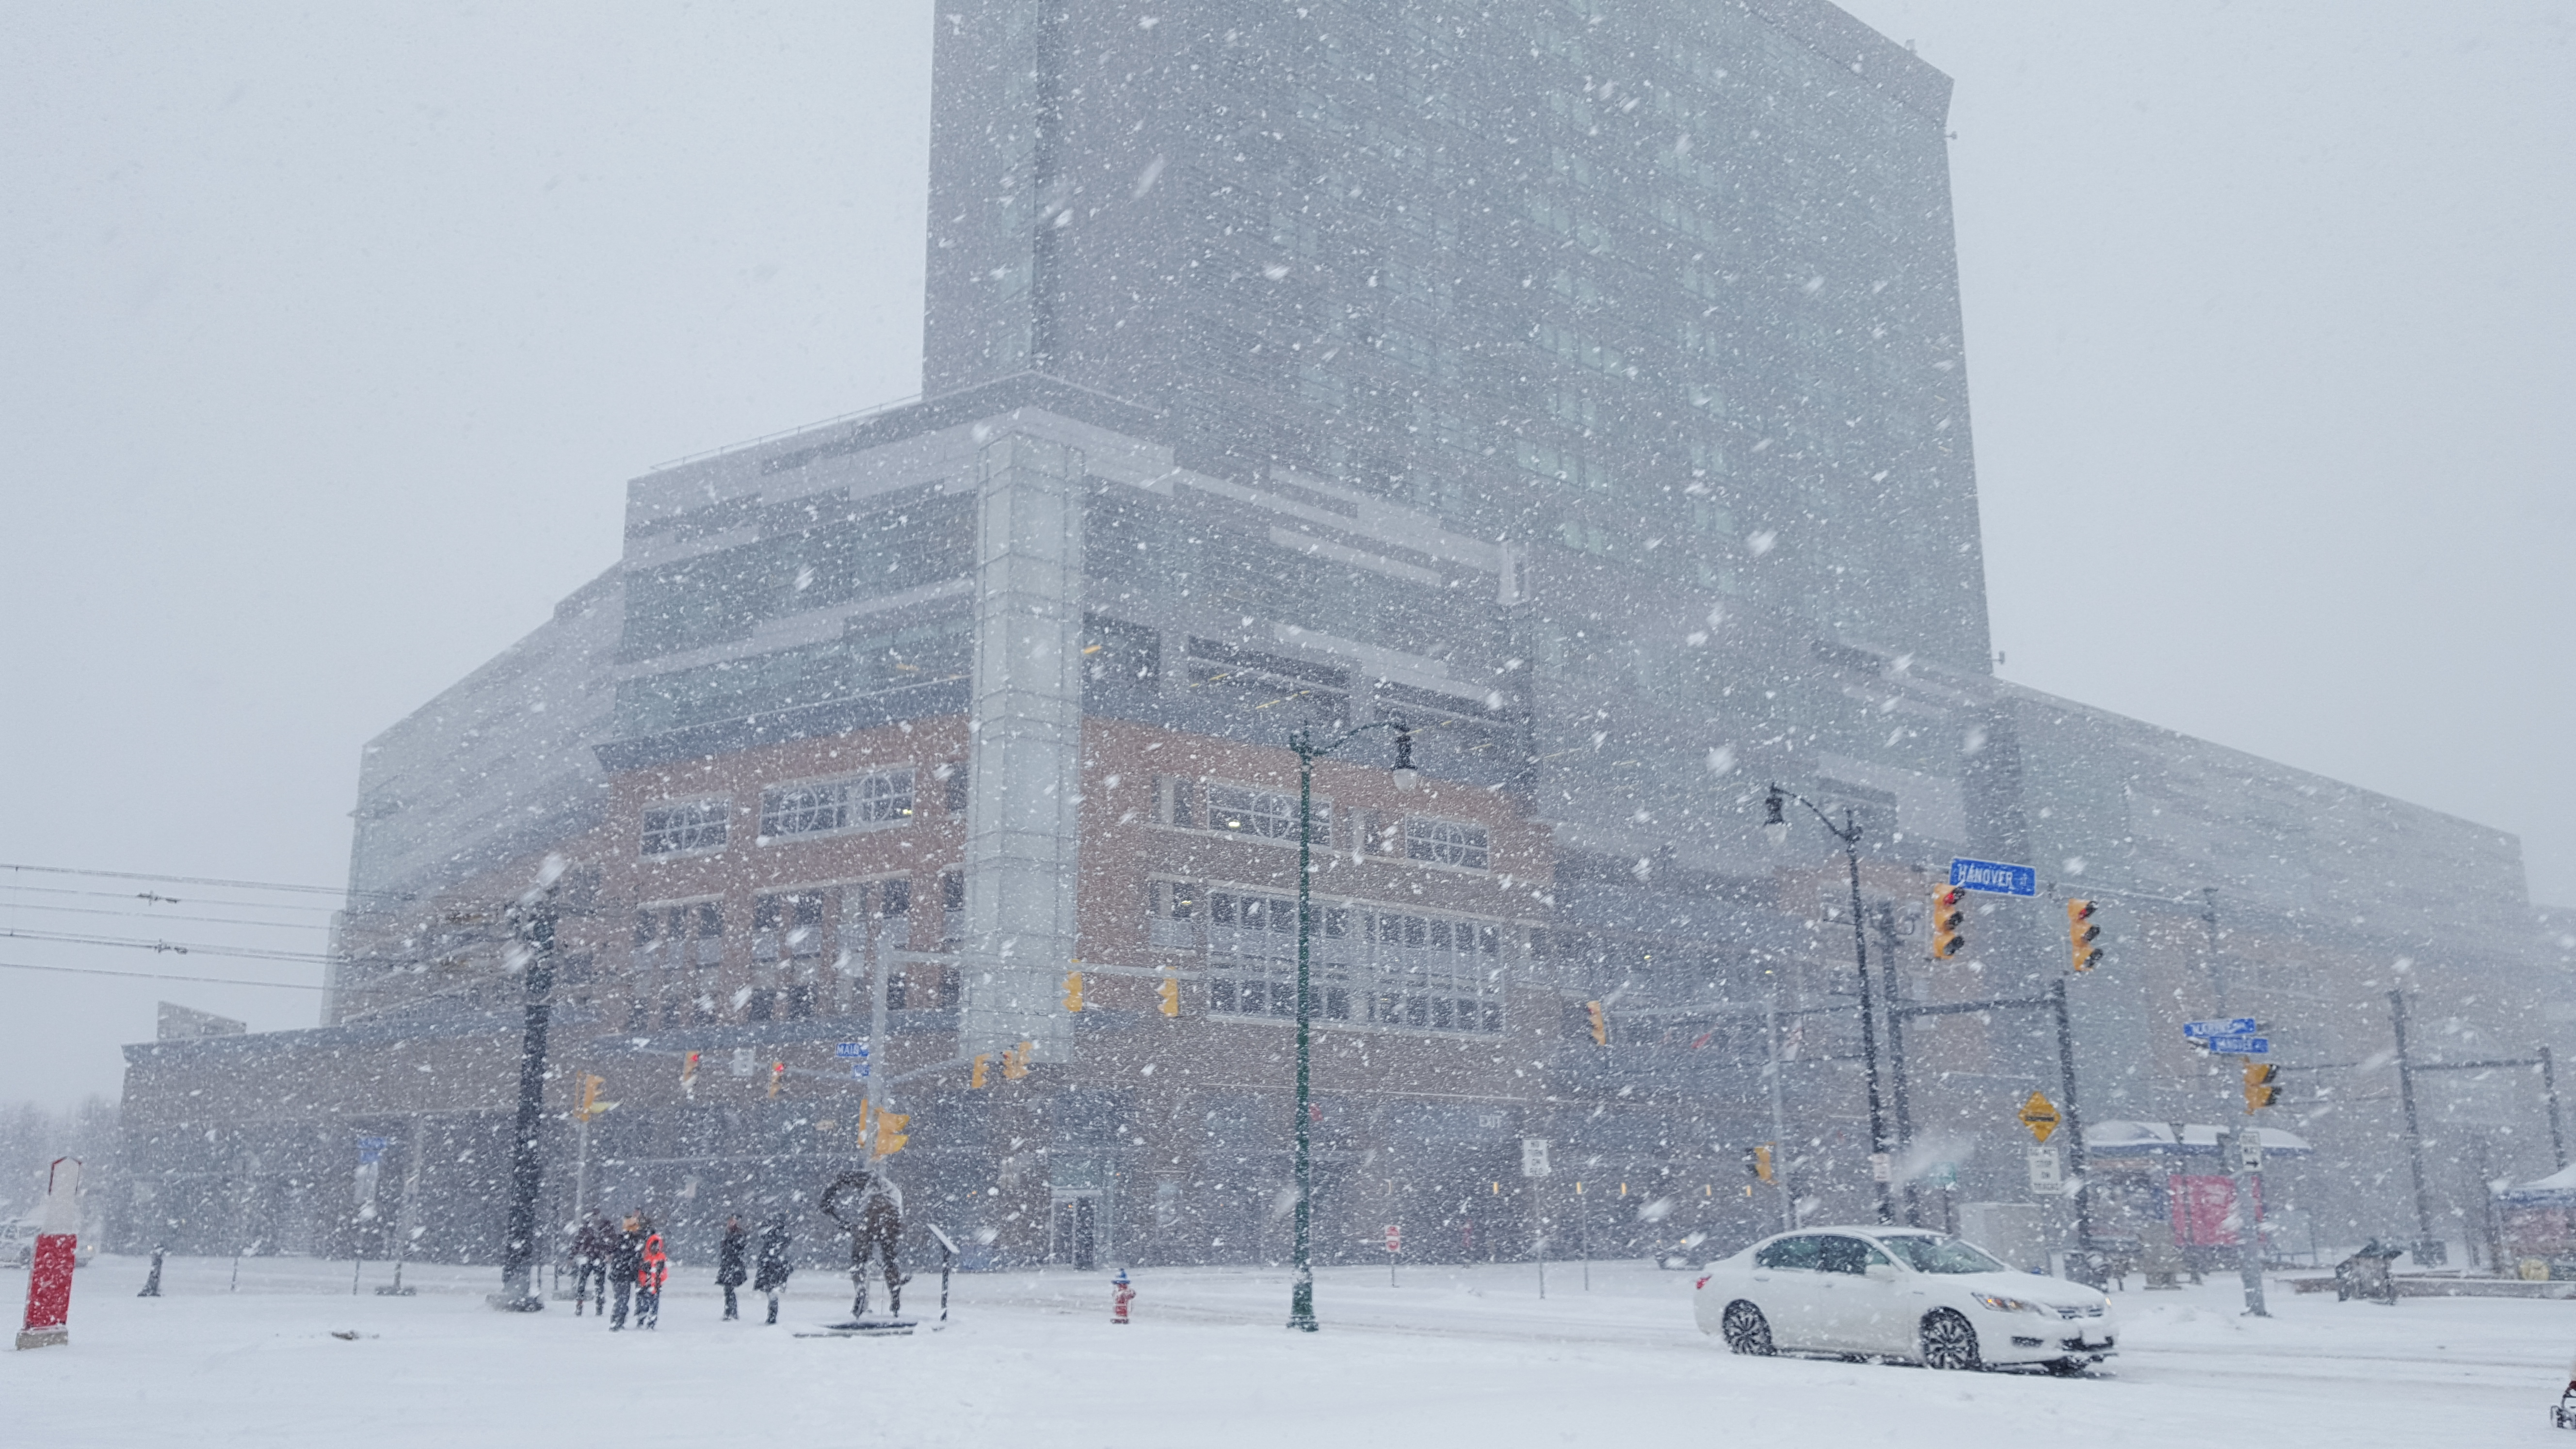 Snow falls in front of HarborCenter shortly after 2 p.m. Jan. 17. (Sara Meehan/Buffalo News)